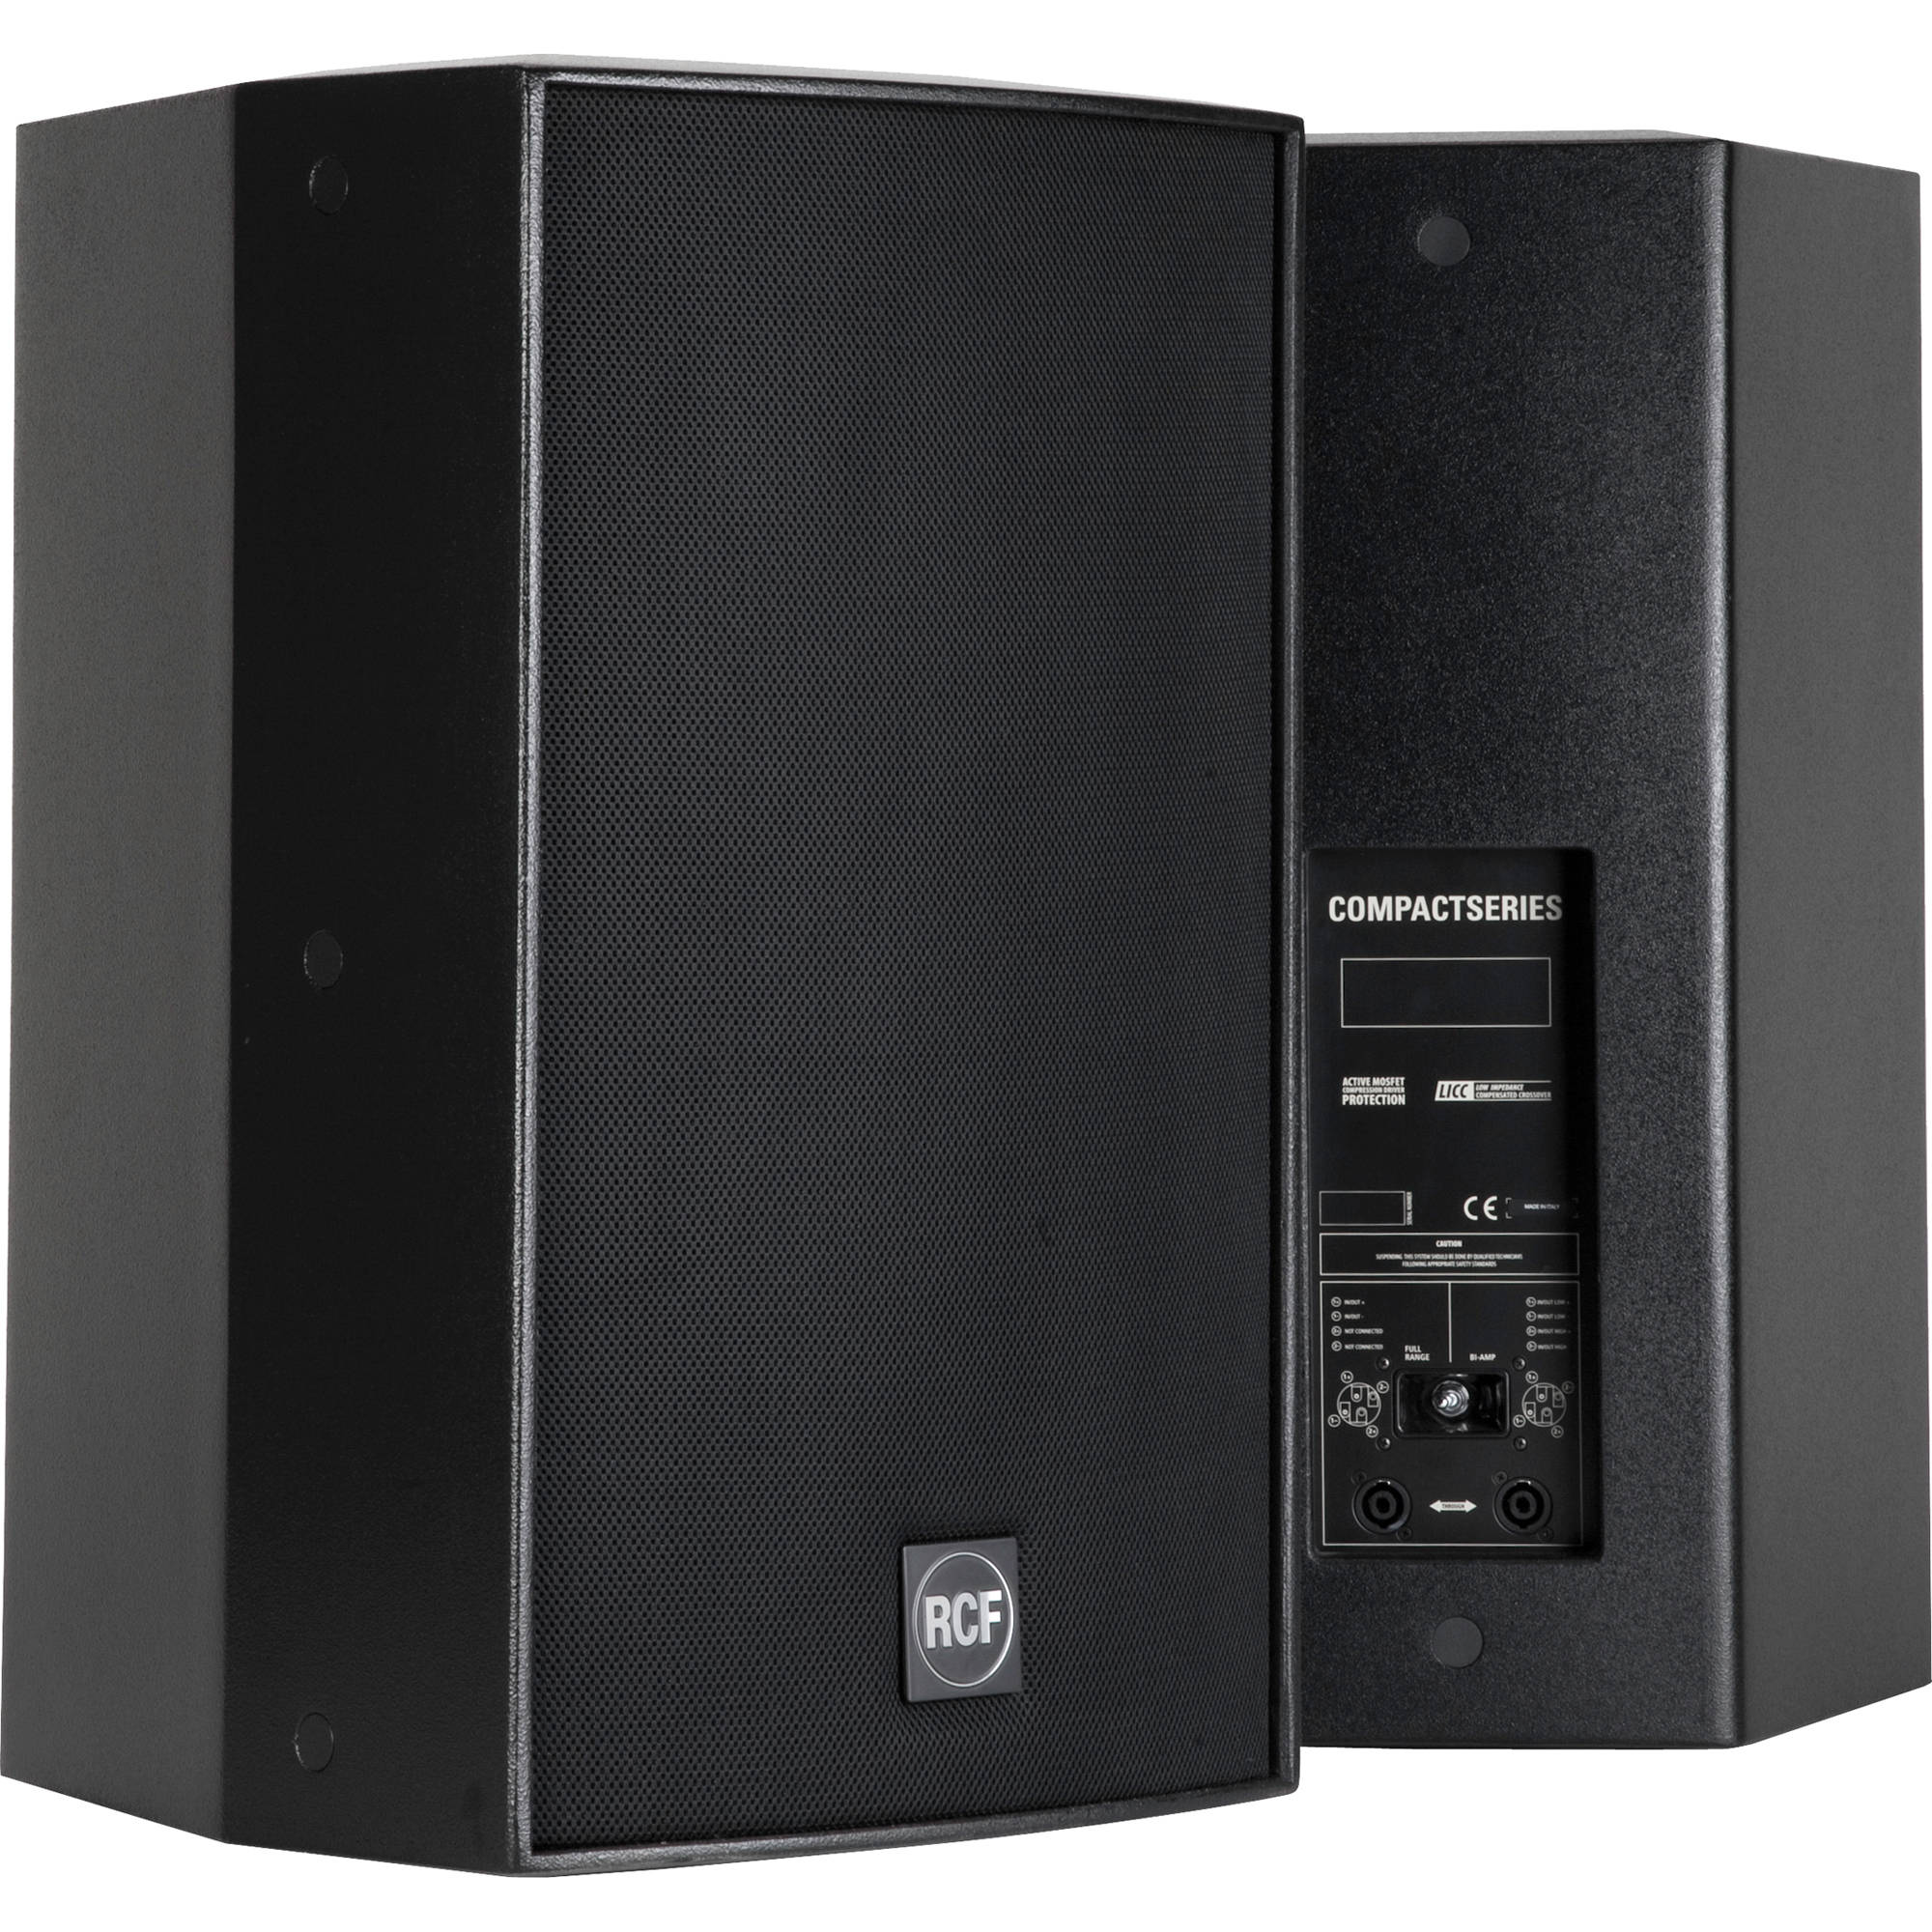 Rcf C5215 64 Acustica 500w Compact 2 Way Passive Bh Loudspeaker System Crossover Network Speaker Protection Circuit Black